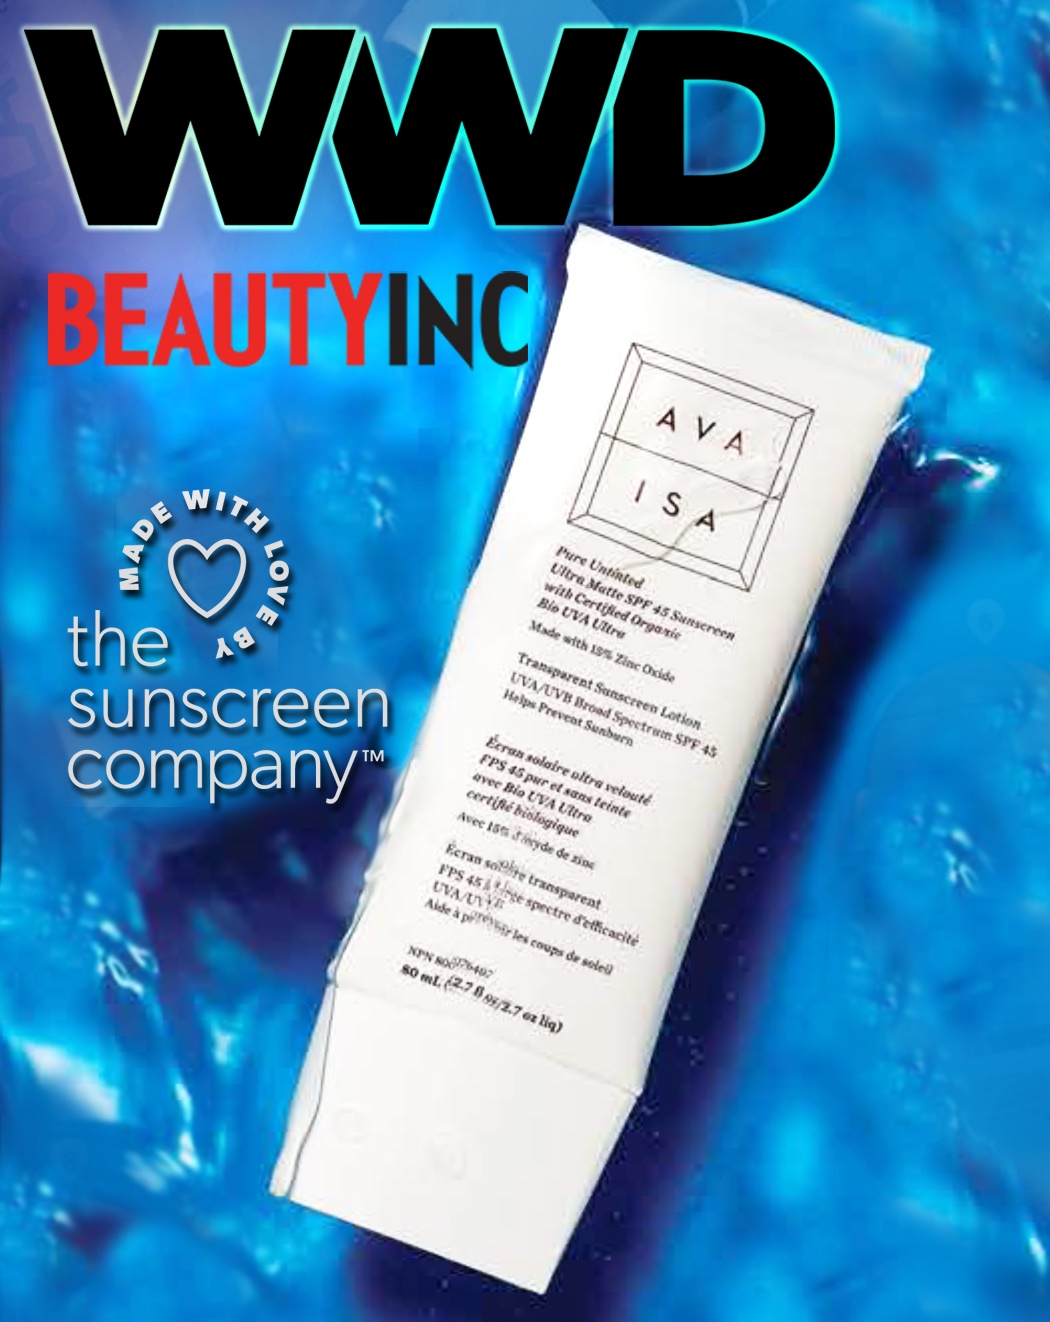 Beauty Inc List Our Ava Isa SPF As A Safer Sunscreen Than Traditional Brands. - Chemicals are out. Clean sunscreen is in. In their latest Beauty Inc issue, the WWD recommends our Ava Isa mineral SPF as a better, safer alternative to traditional formulations. Read the full article to learn more.